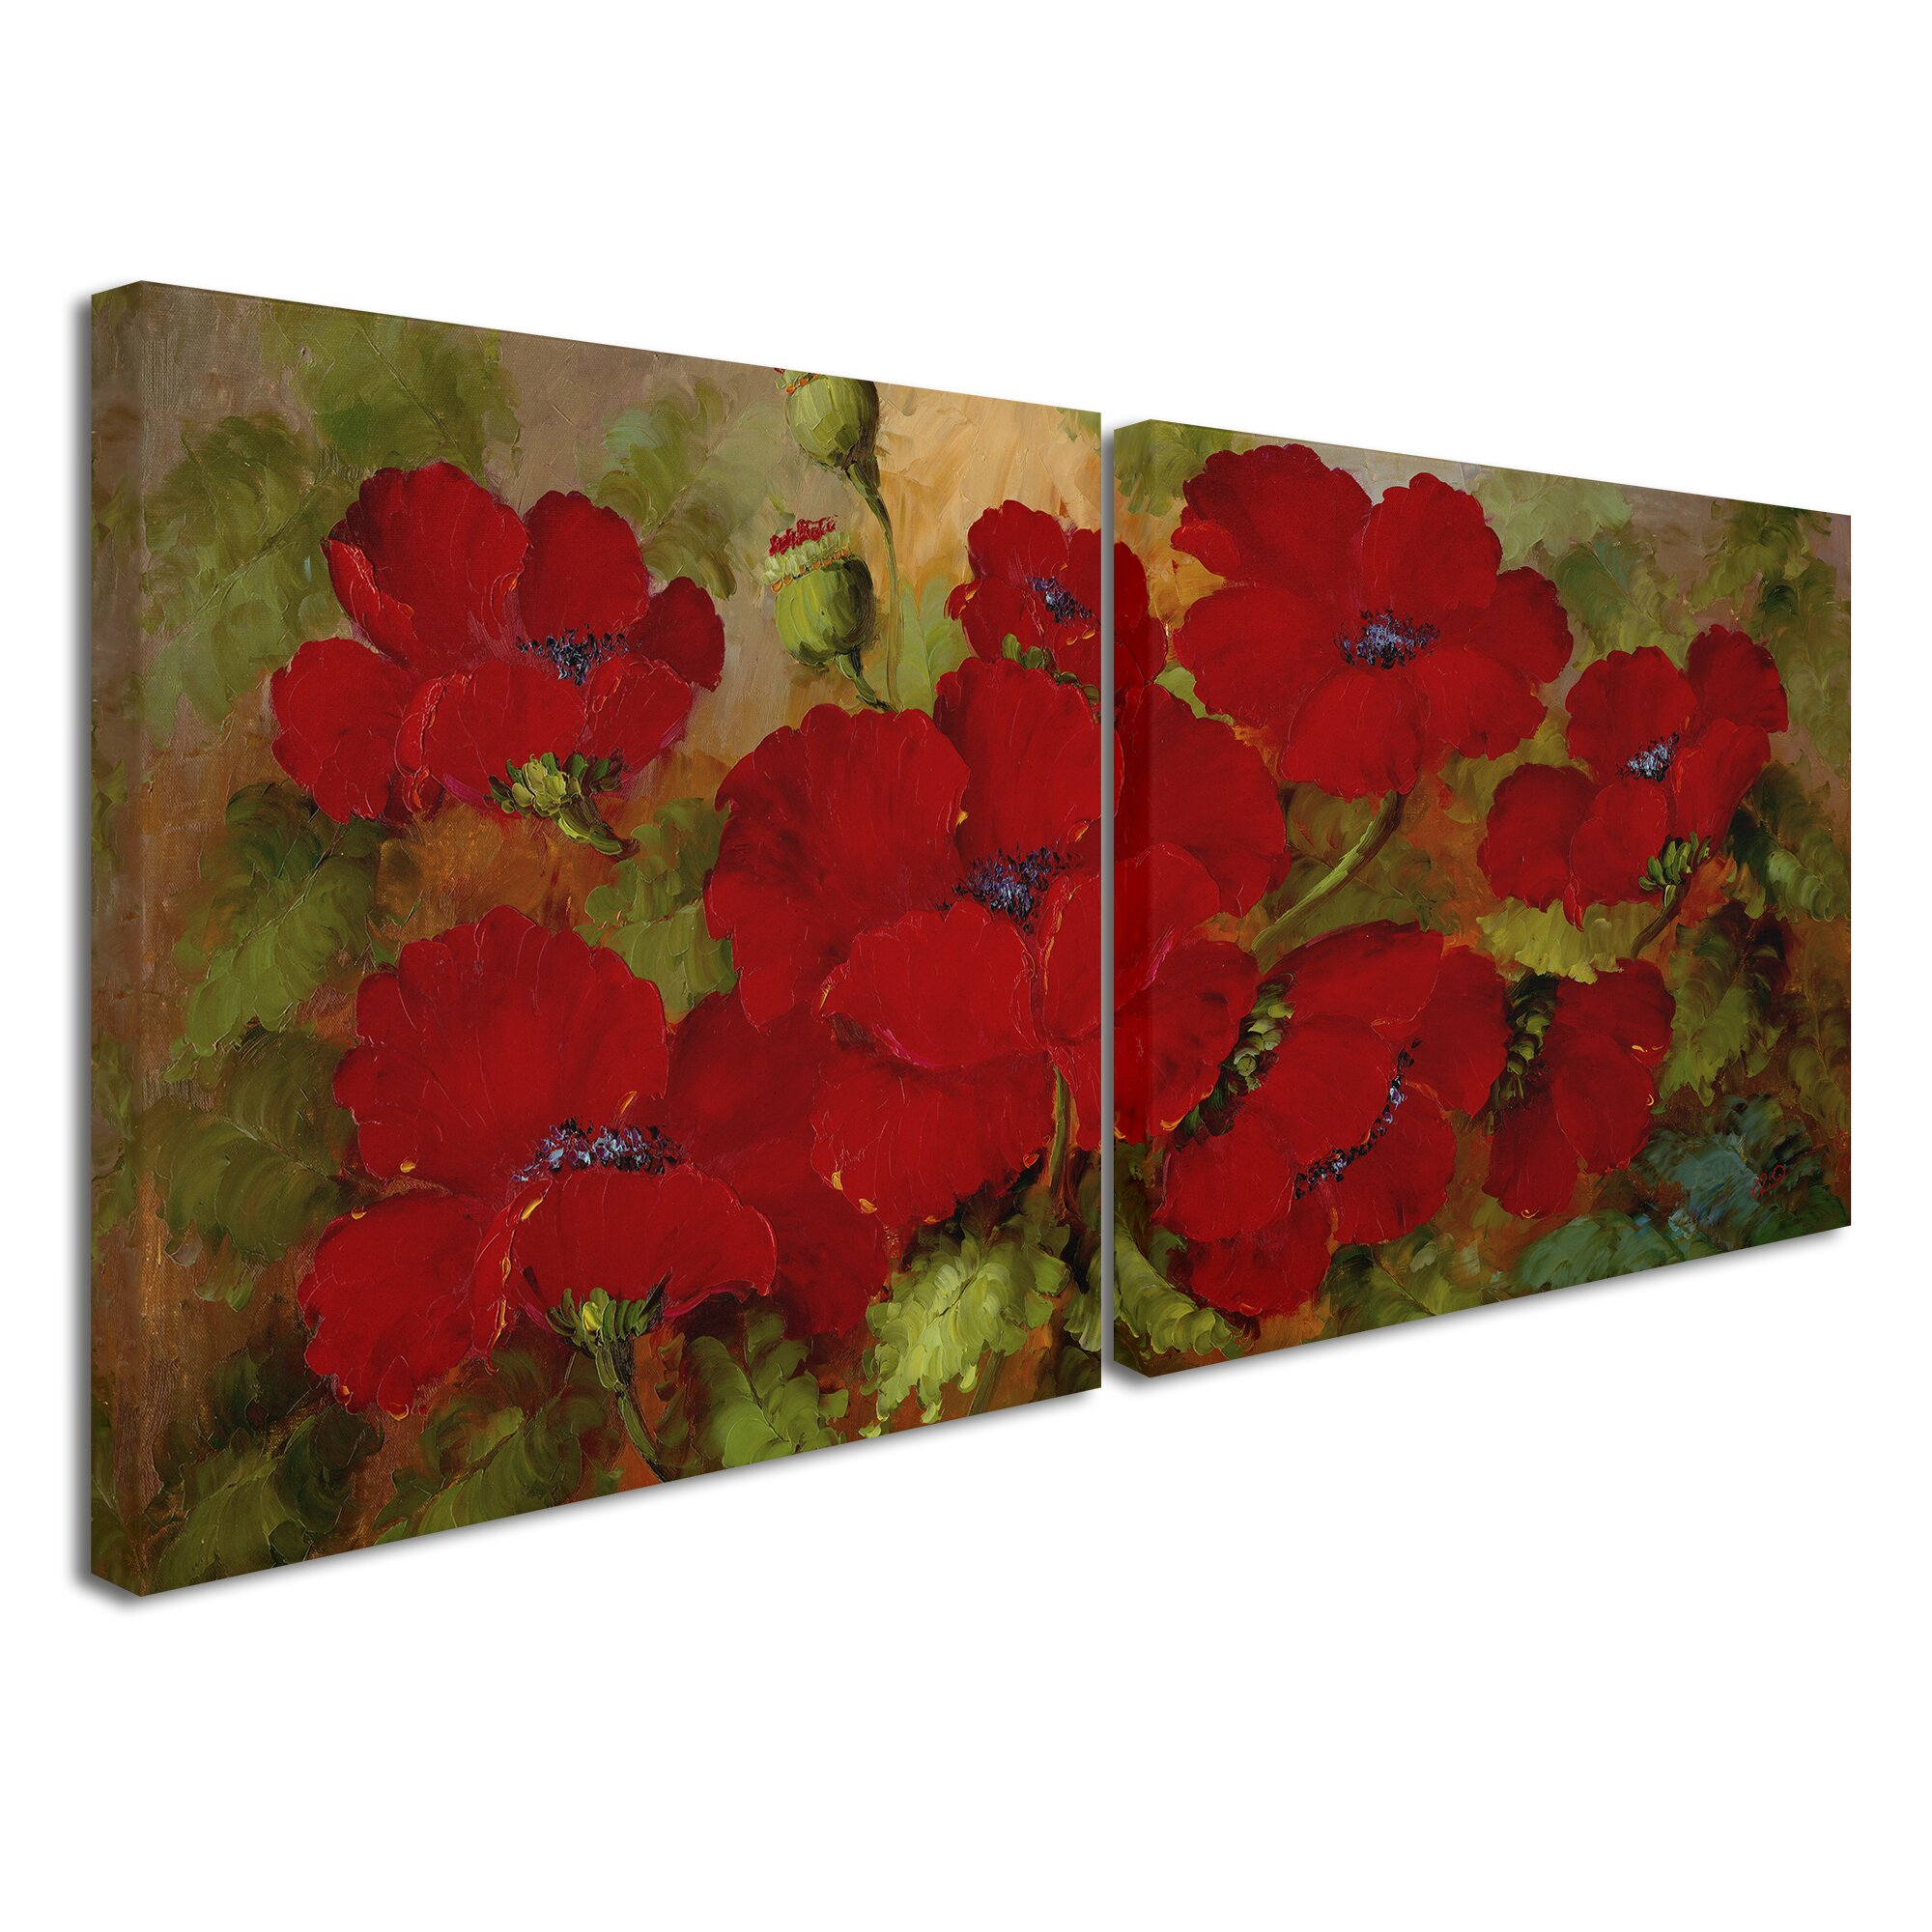 Trademark global red poppies wall art set reviews for Red wall art